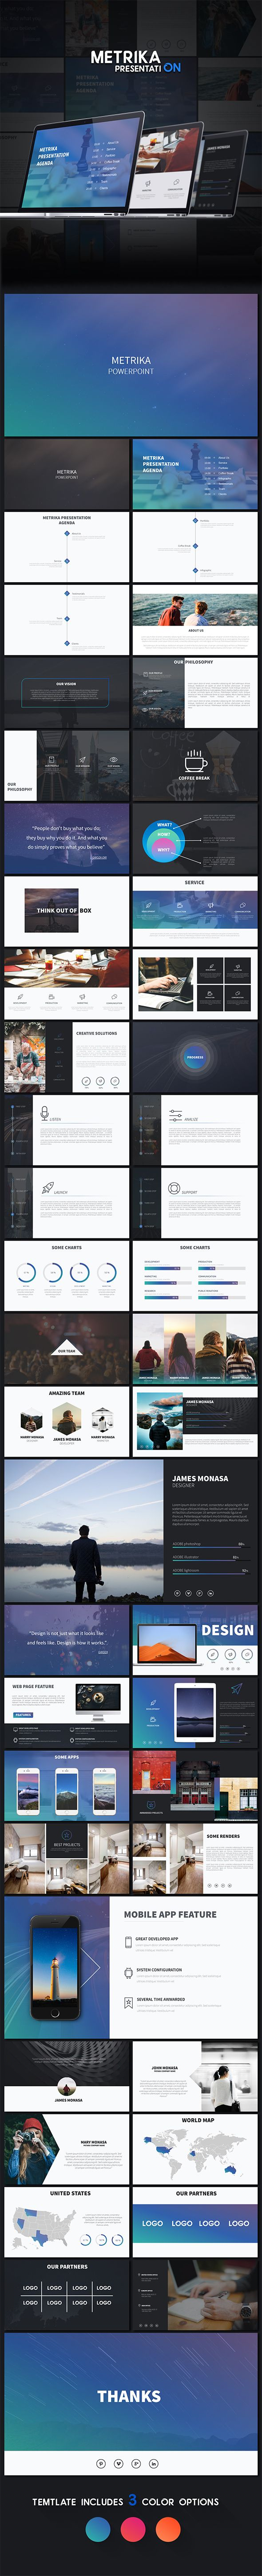 37 best business model canvas powerpoint templates images on metrika colorful powerpoint presentation business powerpoint templatesppt accmission Image collections